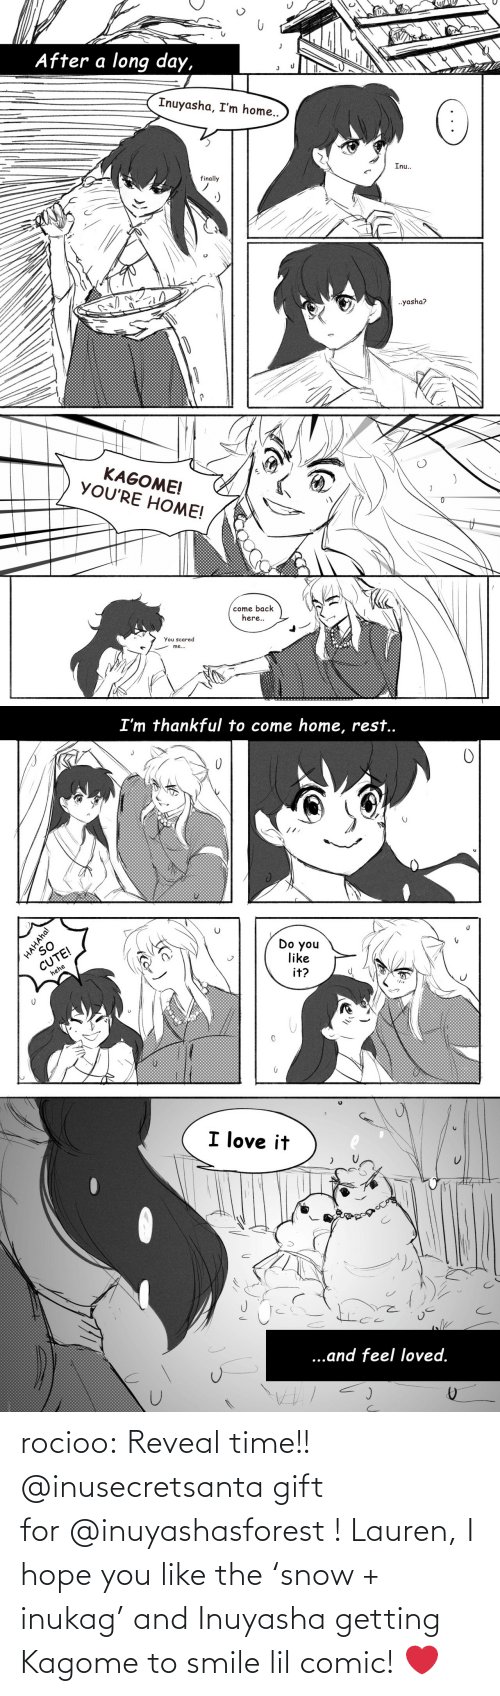 Target, Tumblr, and Blog: rocioo: Reveal time!! @inusecretsanta gift for @inuyashasforest ! Lauren, I hope you like the 'snow + inukag' and Inuyasha getting Kagome to smile lil comic! ❤